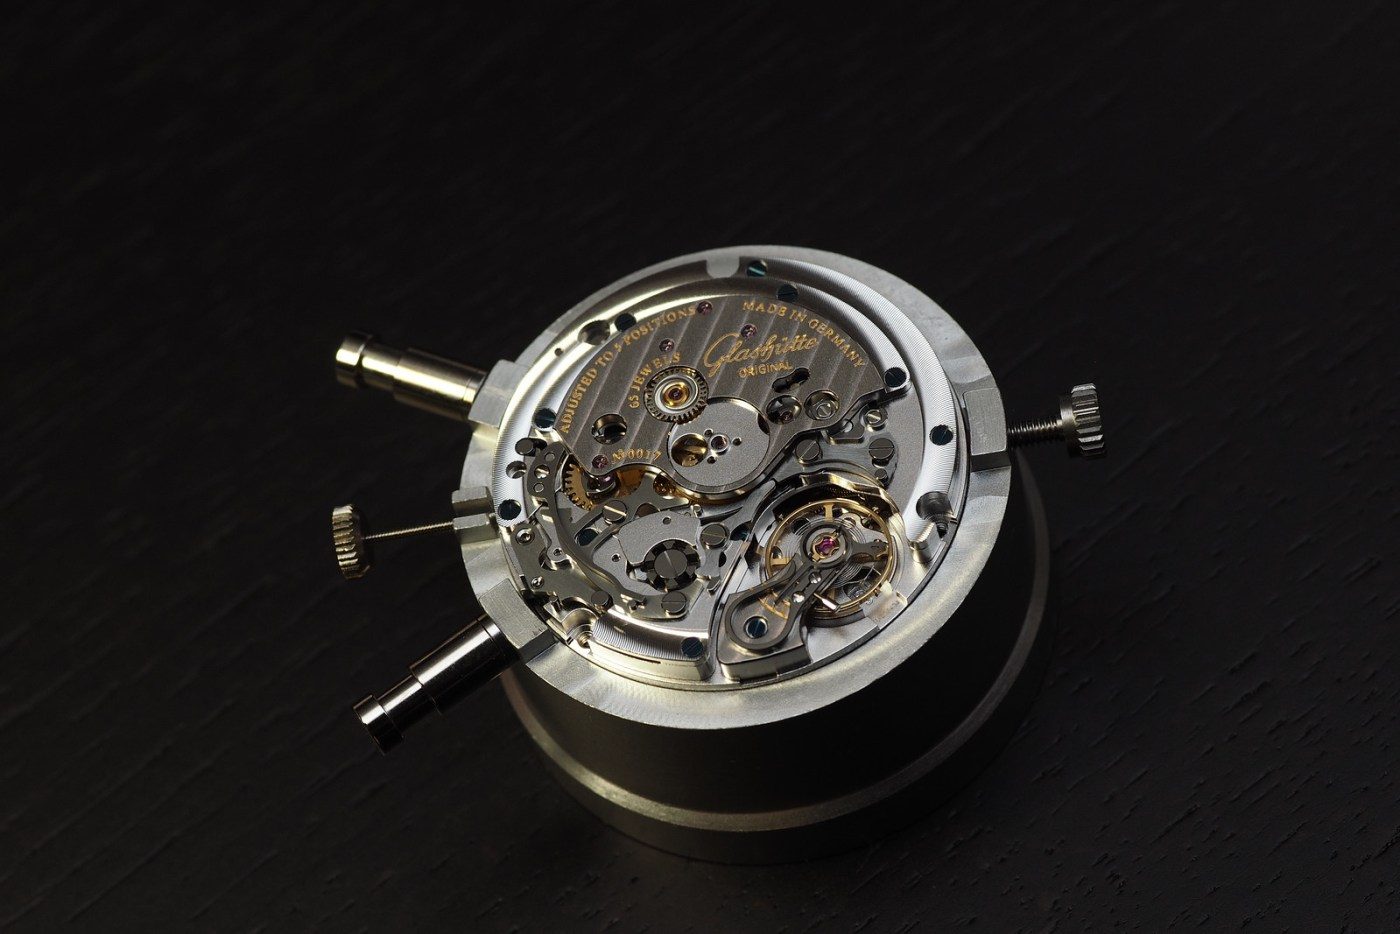 Glashutte Original caliber 37